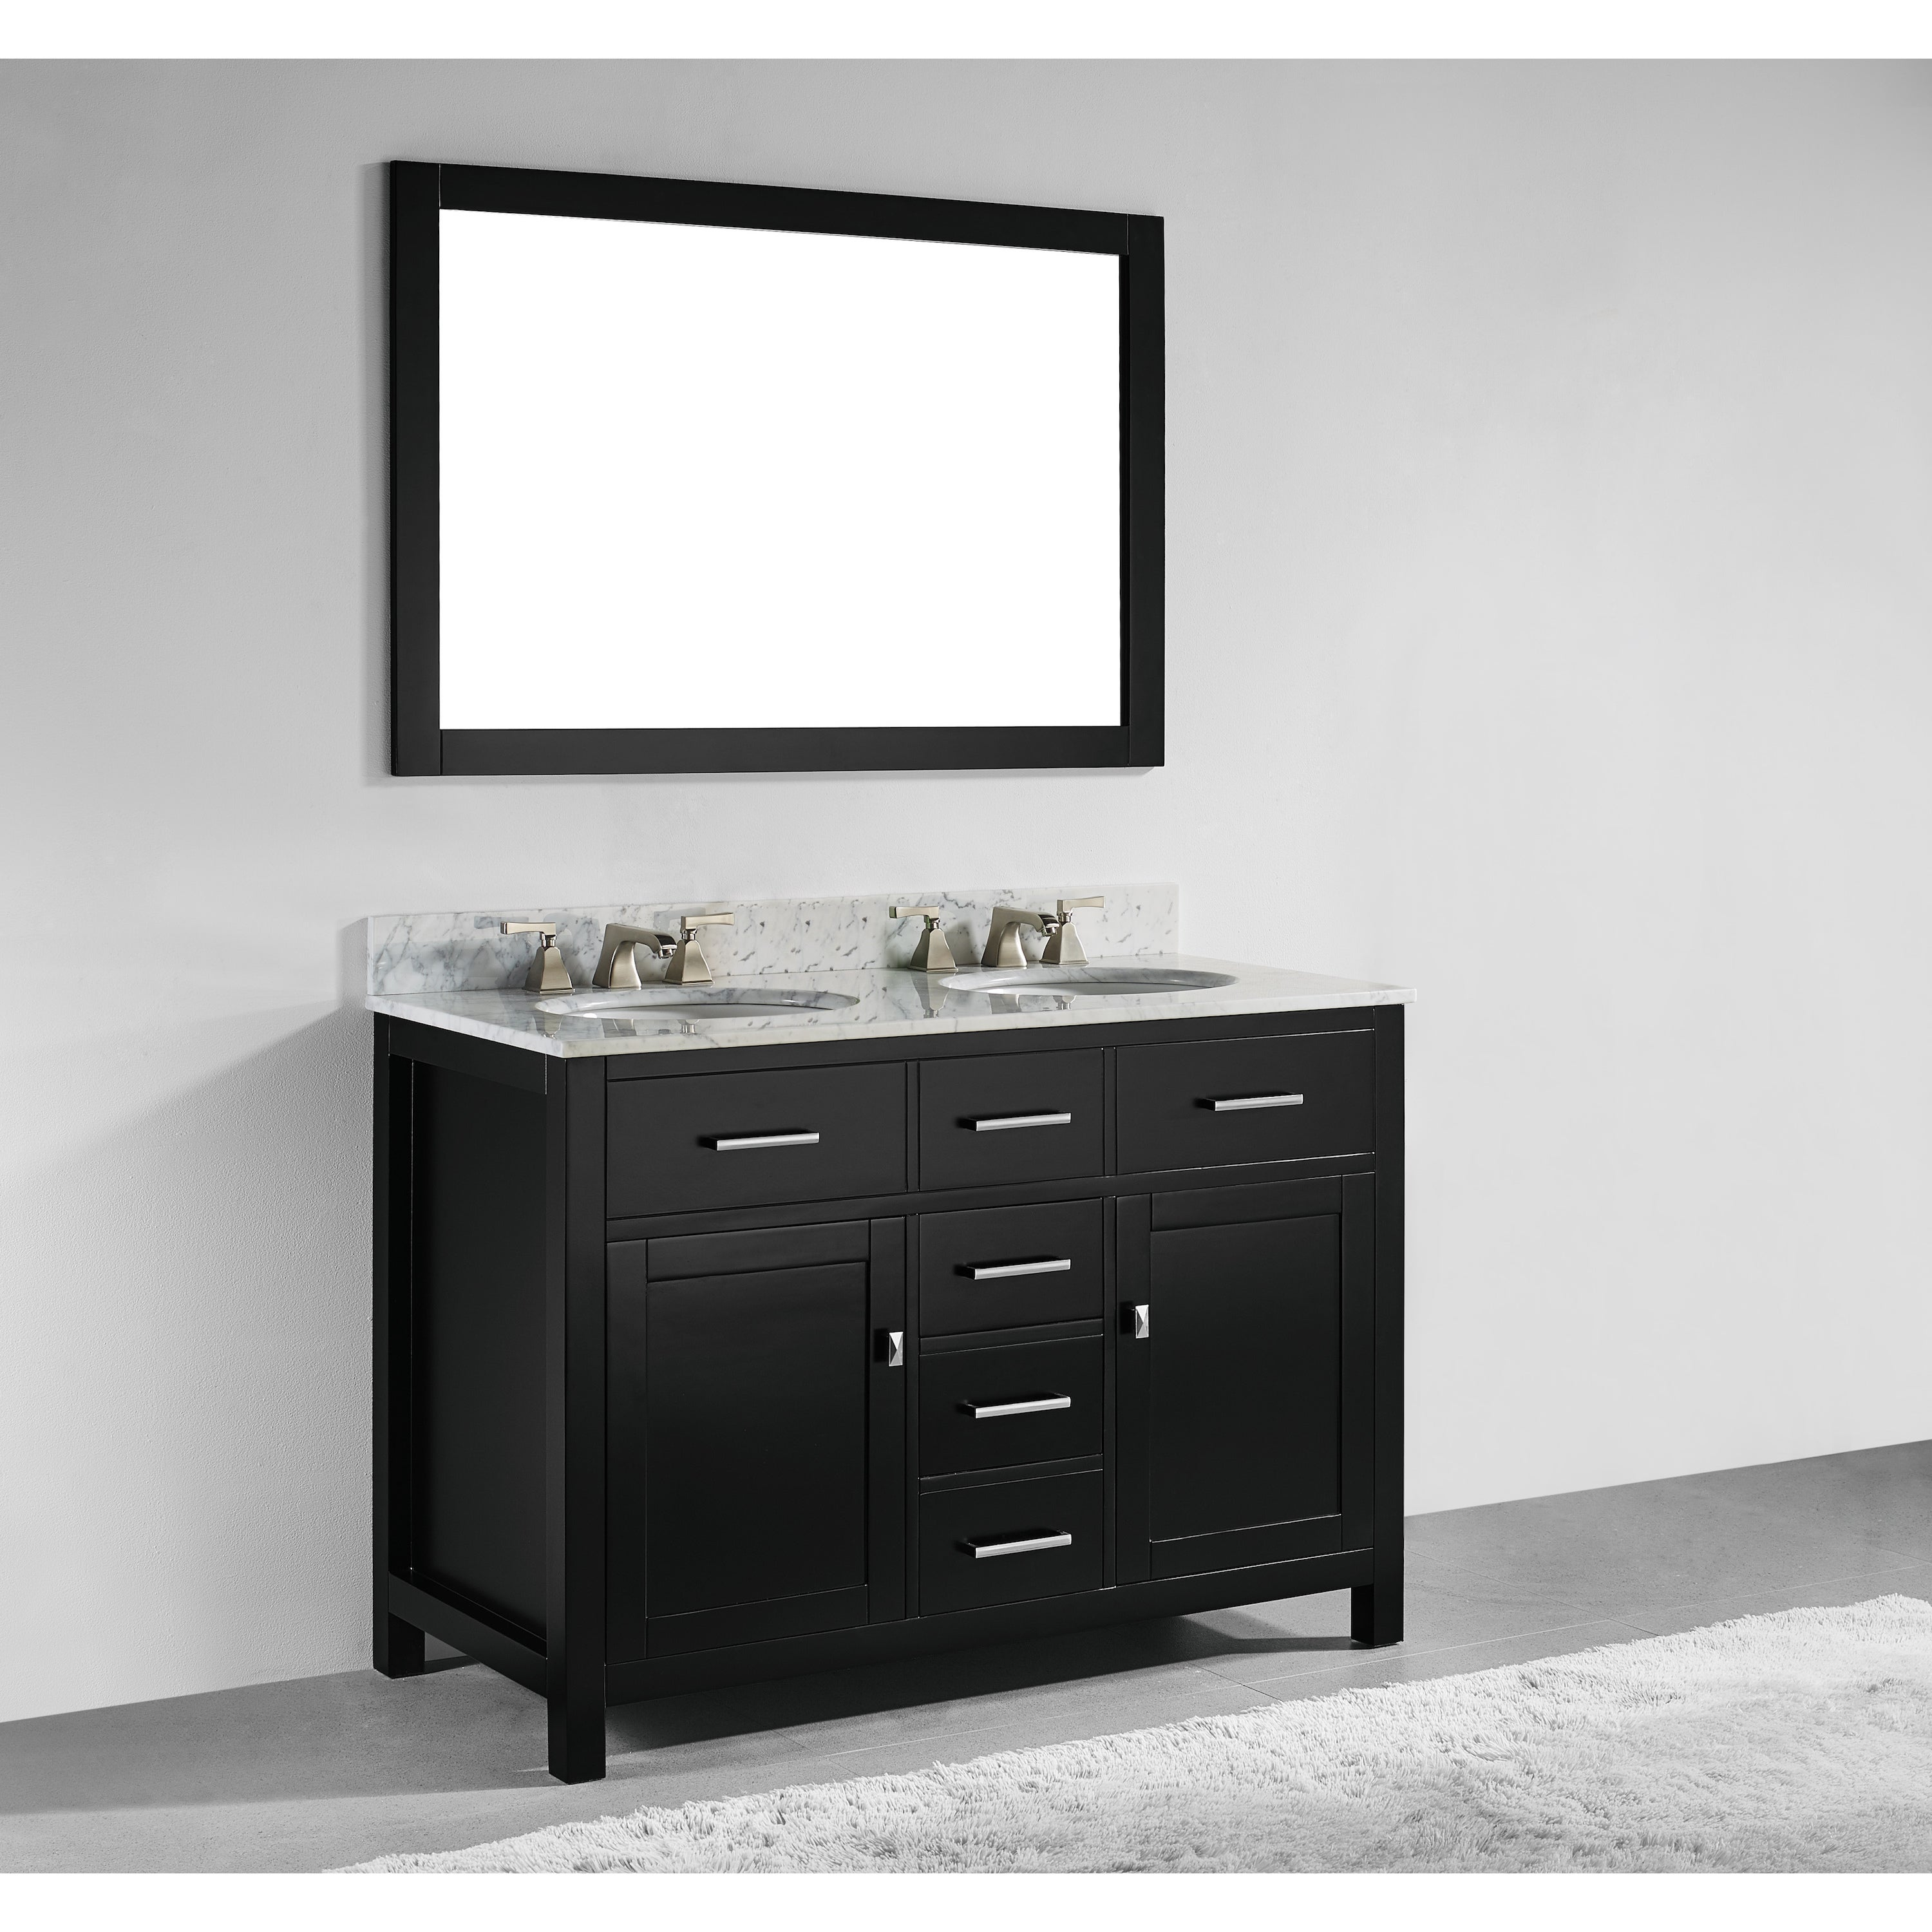 48 Inch Espresso Finish Solid Wood Double Sink Bathroom Vanity With Soft Closing Drawers And Mirror On Sale Overstock 12382373